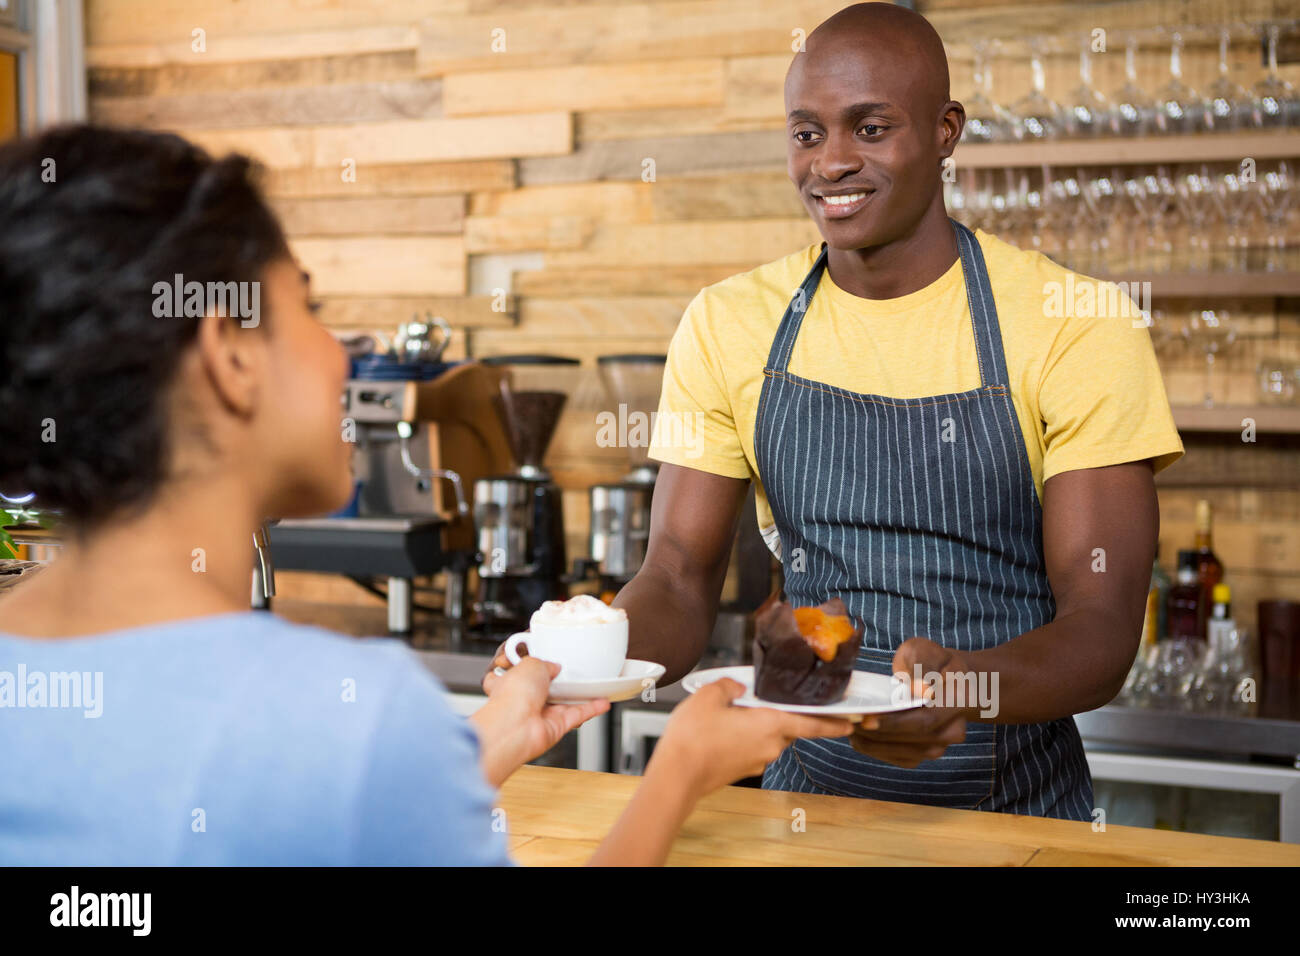 Portrait of male barista serving coffee and dessert to female customer in cafe - Stock Image